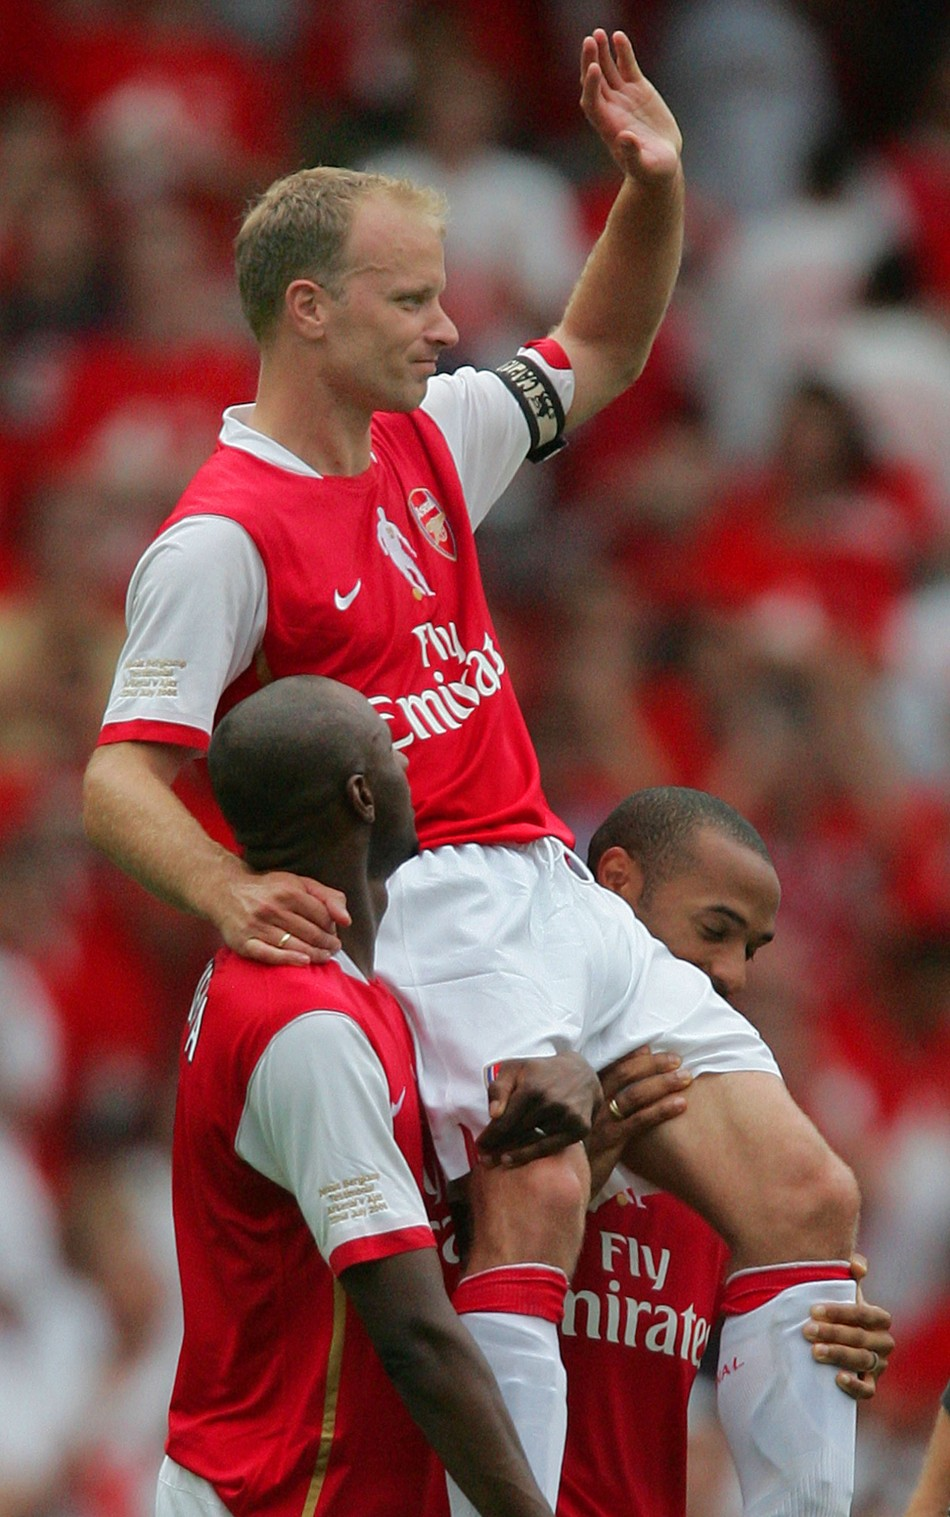 Arsenal's Bergkamp carried by Viera and Henry at the Emirates Stadium after Arsenal's friendly match against Ajax